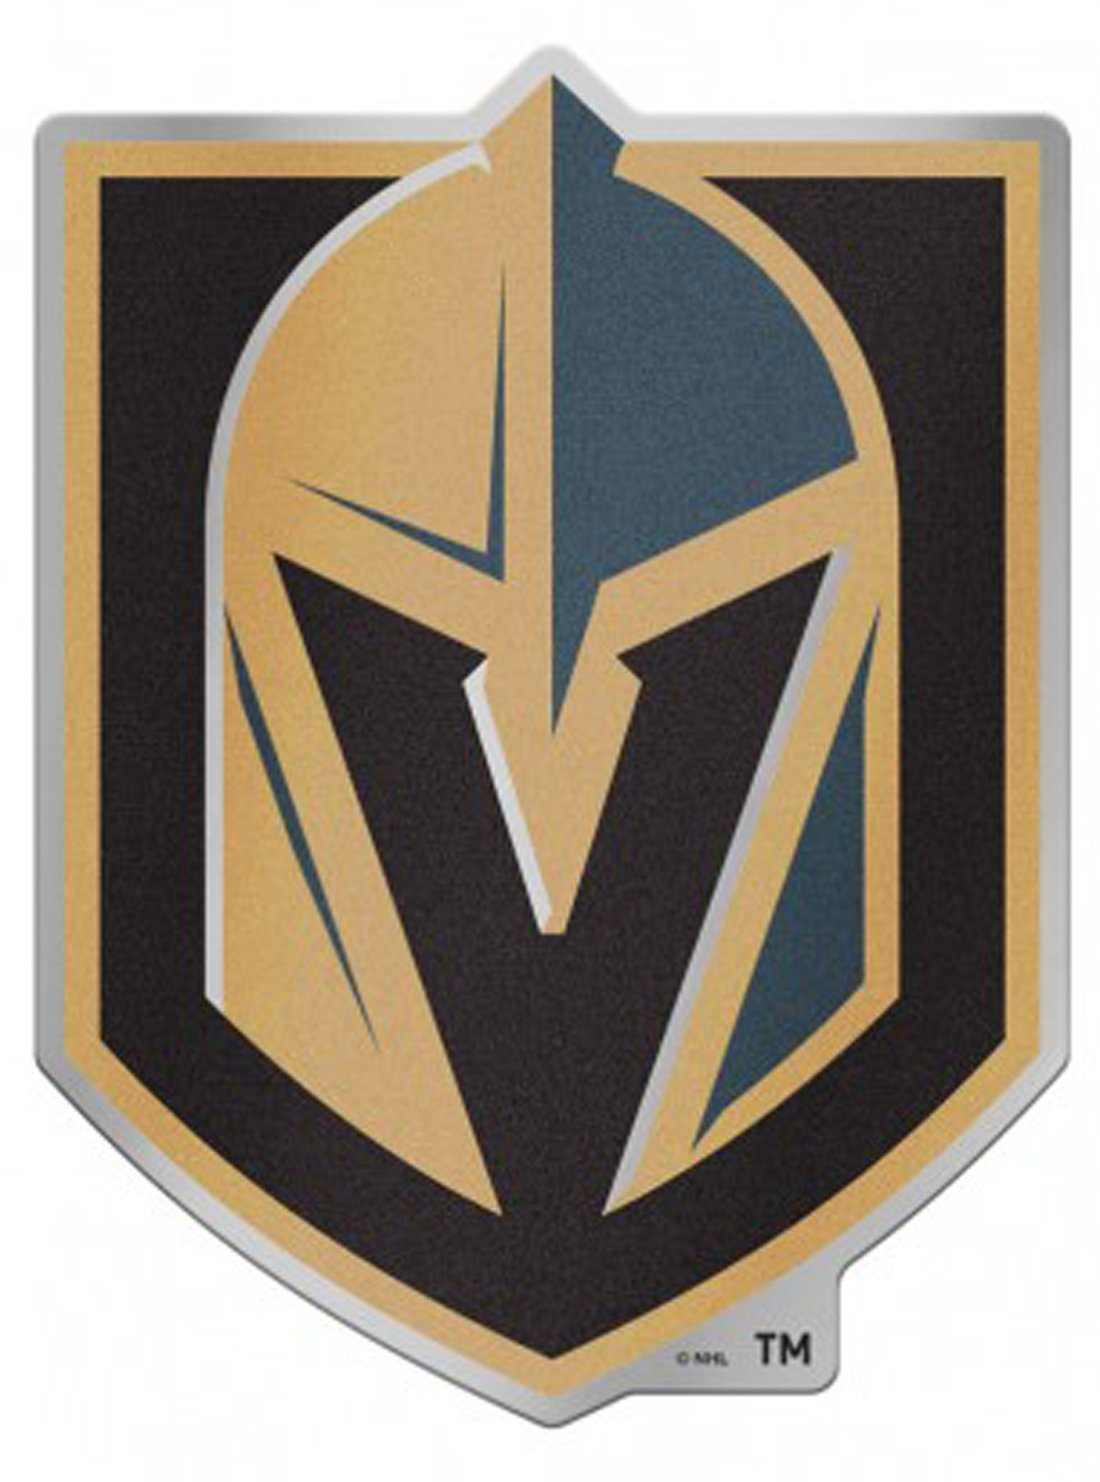 WinCraft NHL Las Vegas Golden Knights 4.85 x 3.5 Inch Plastic Auto Badge Sticker Decal